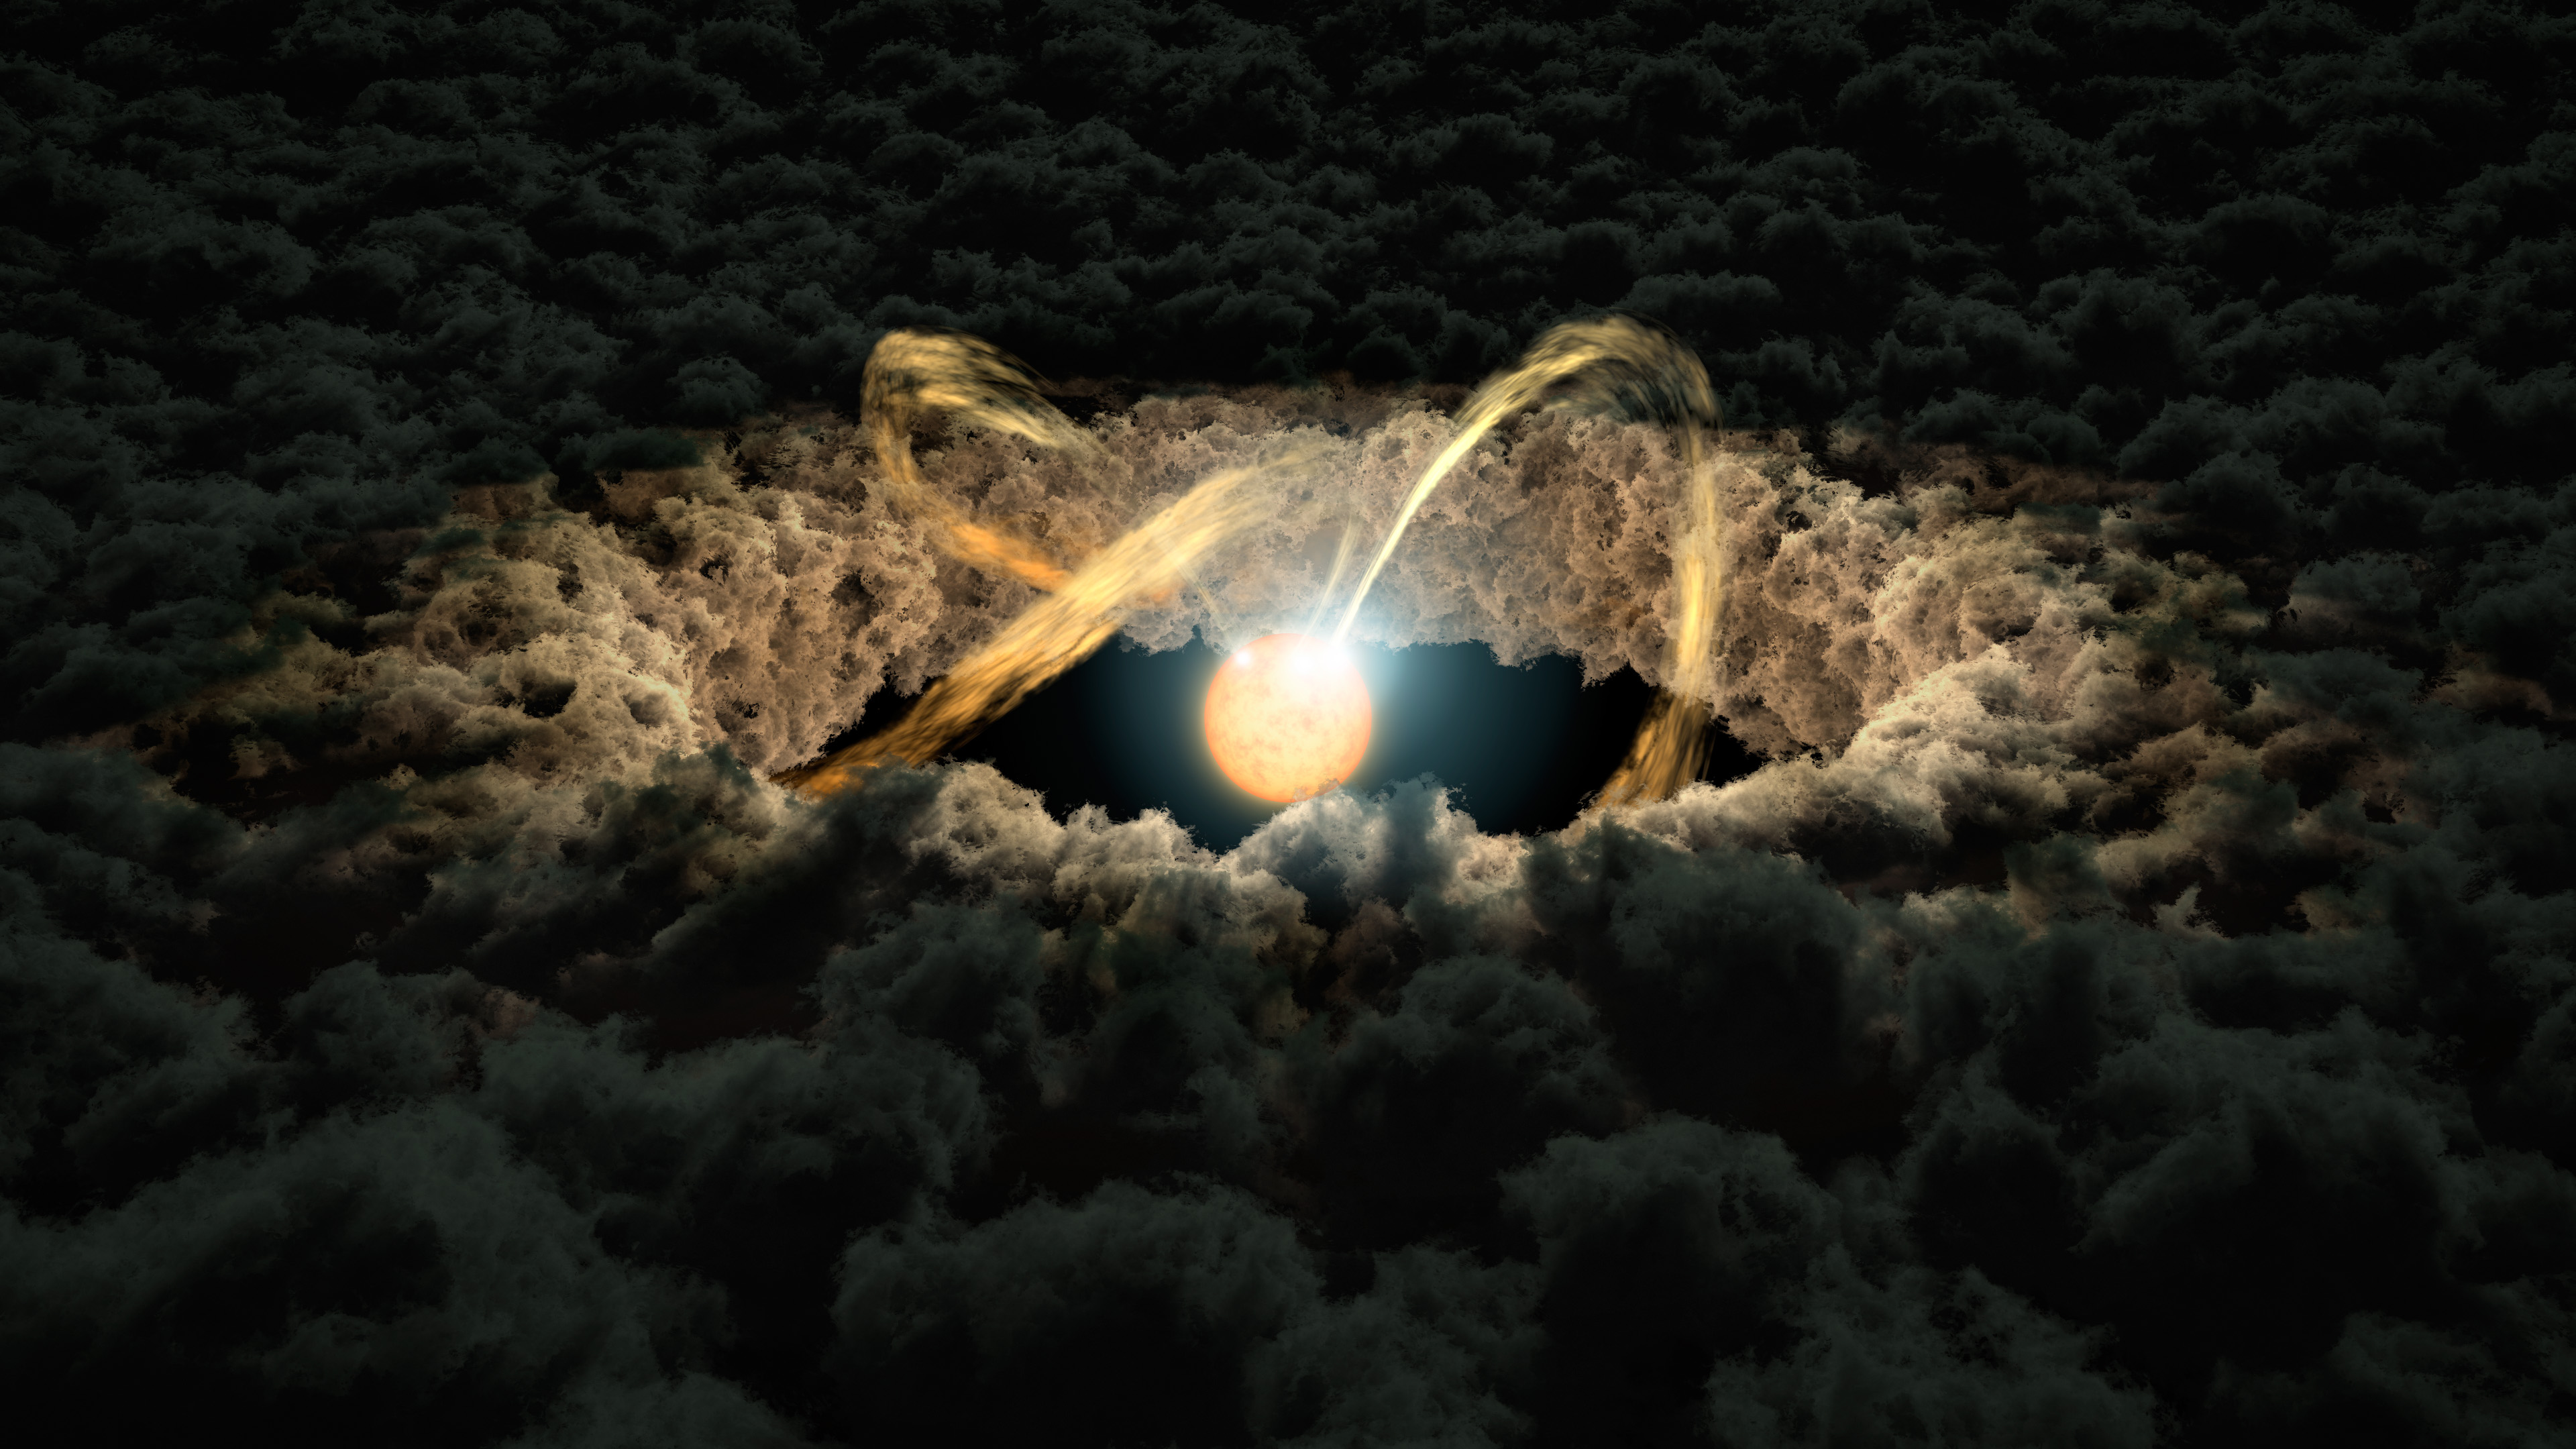 Light Echoes Used to Study Protoplanetary Disks